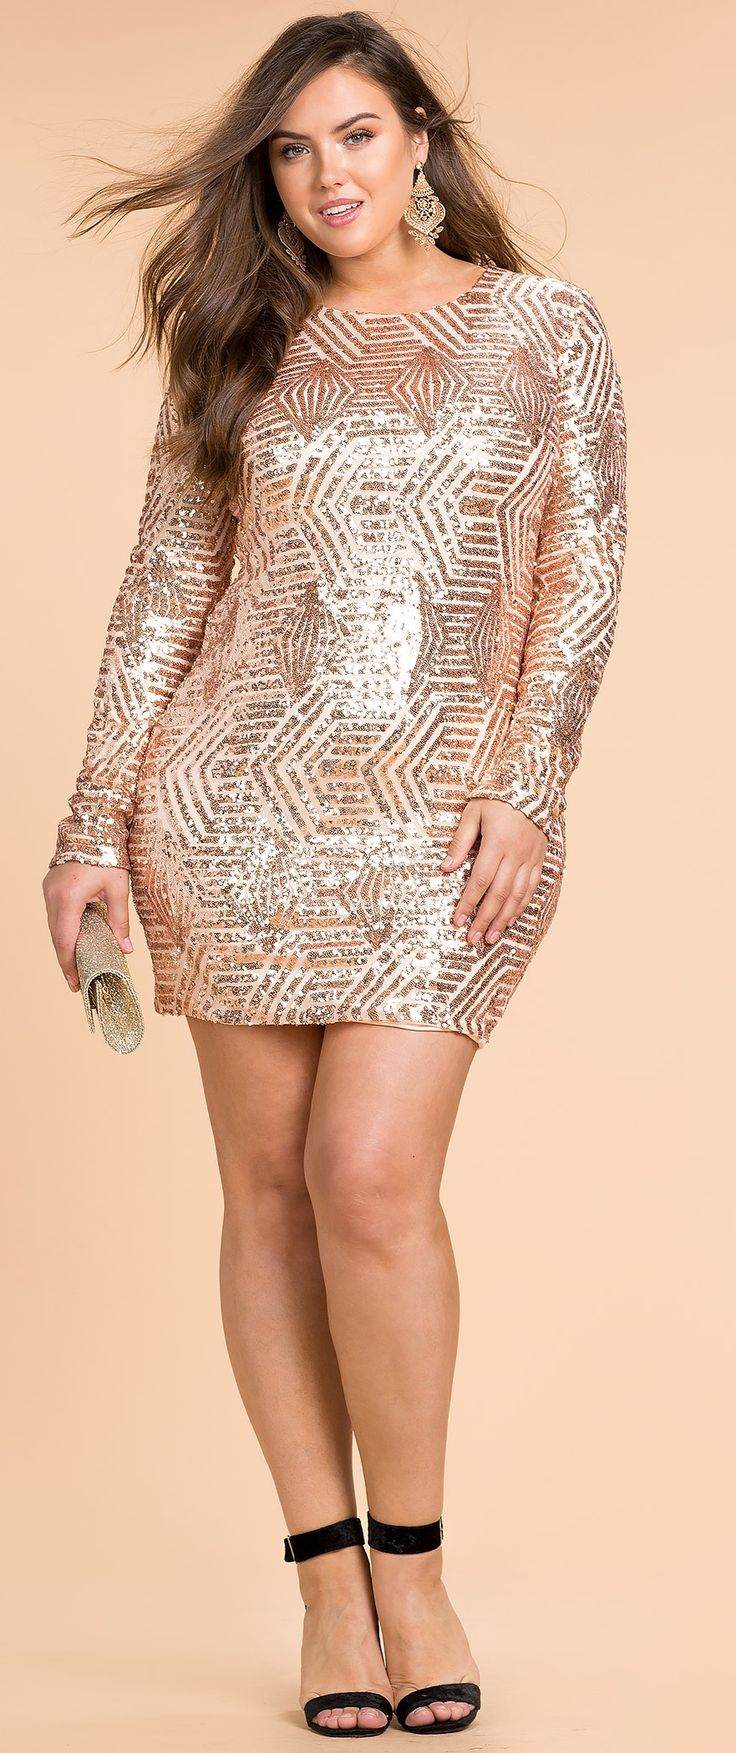 Sparkle dress plus size